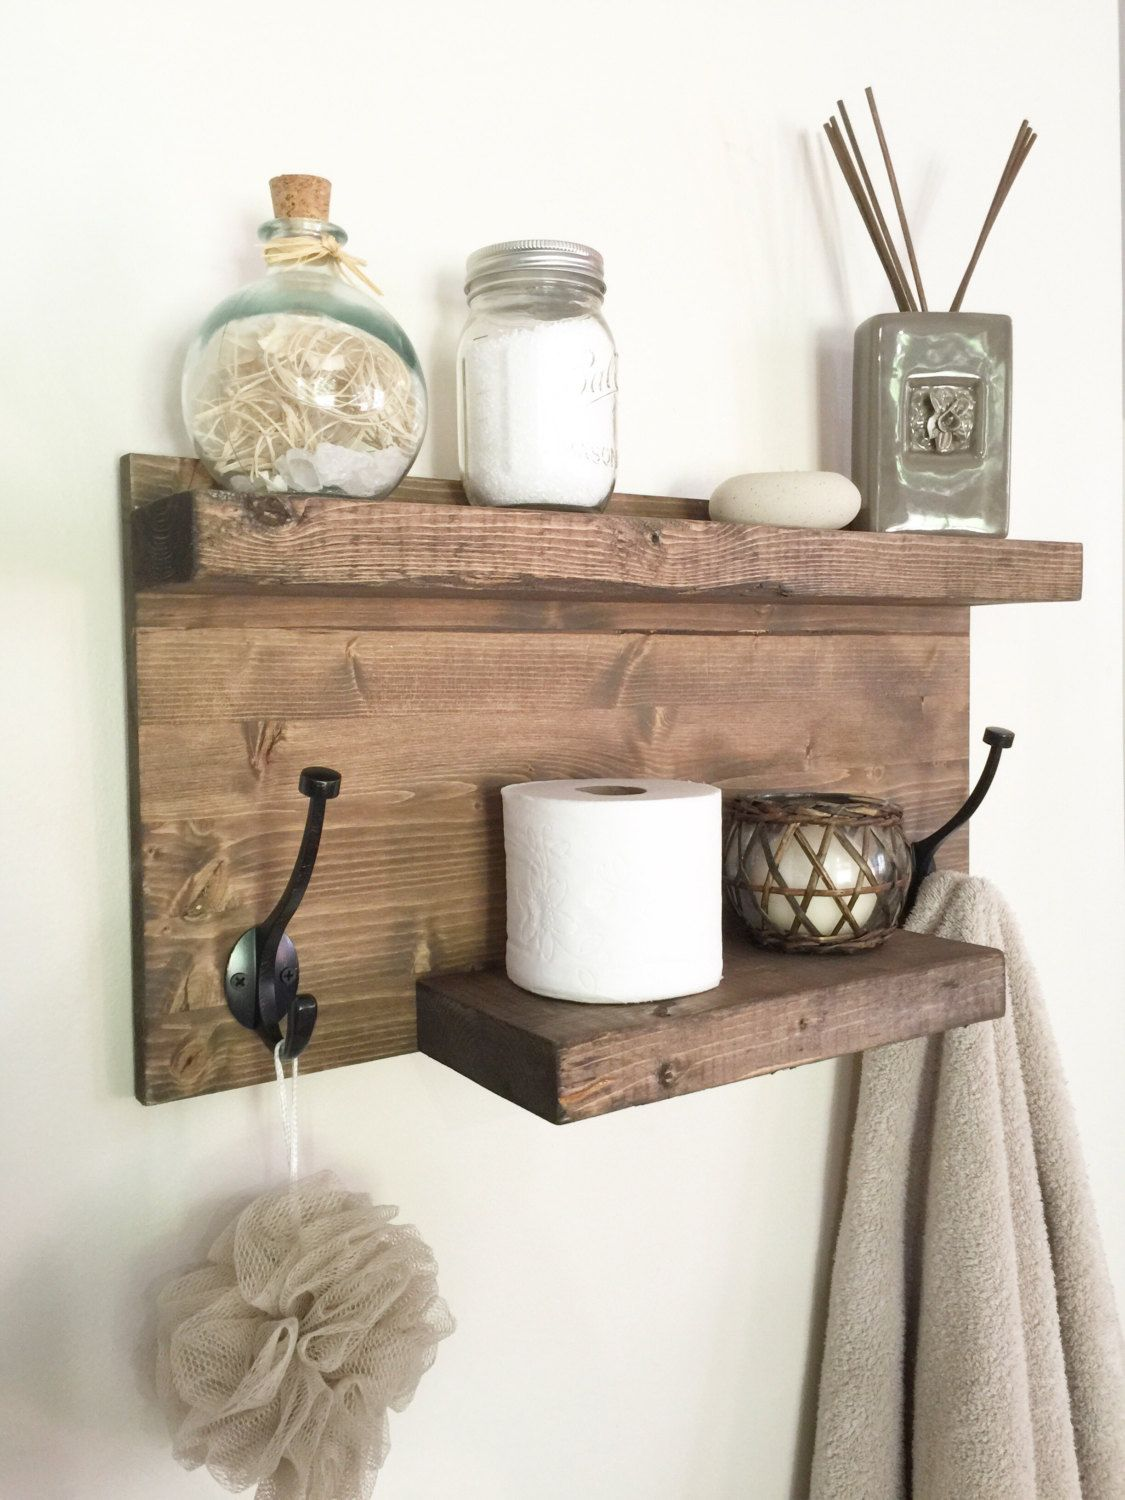 rustic bathroom shelf wood towel rack entryway floating shelves for towels farmhouse decor with hooks custom glass unique shoe storage fire mantle piece command coat hanger modern